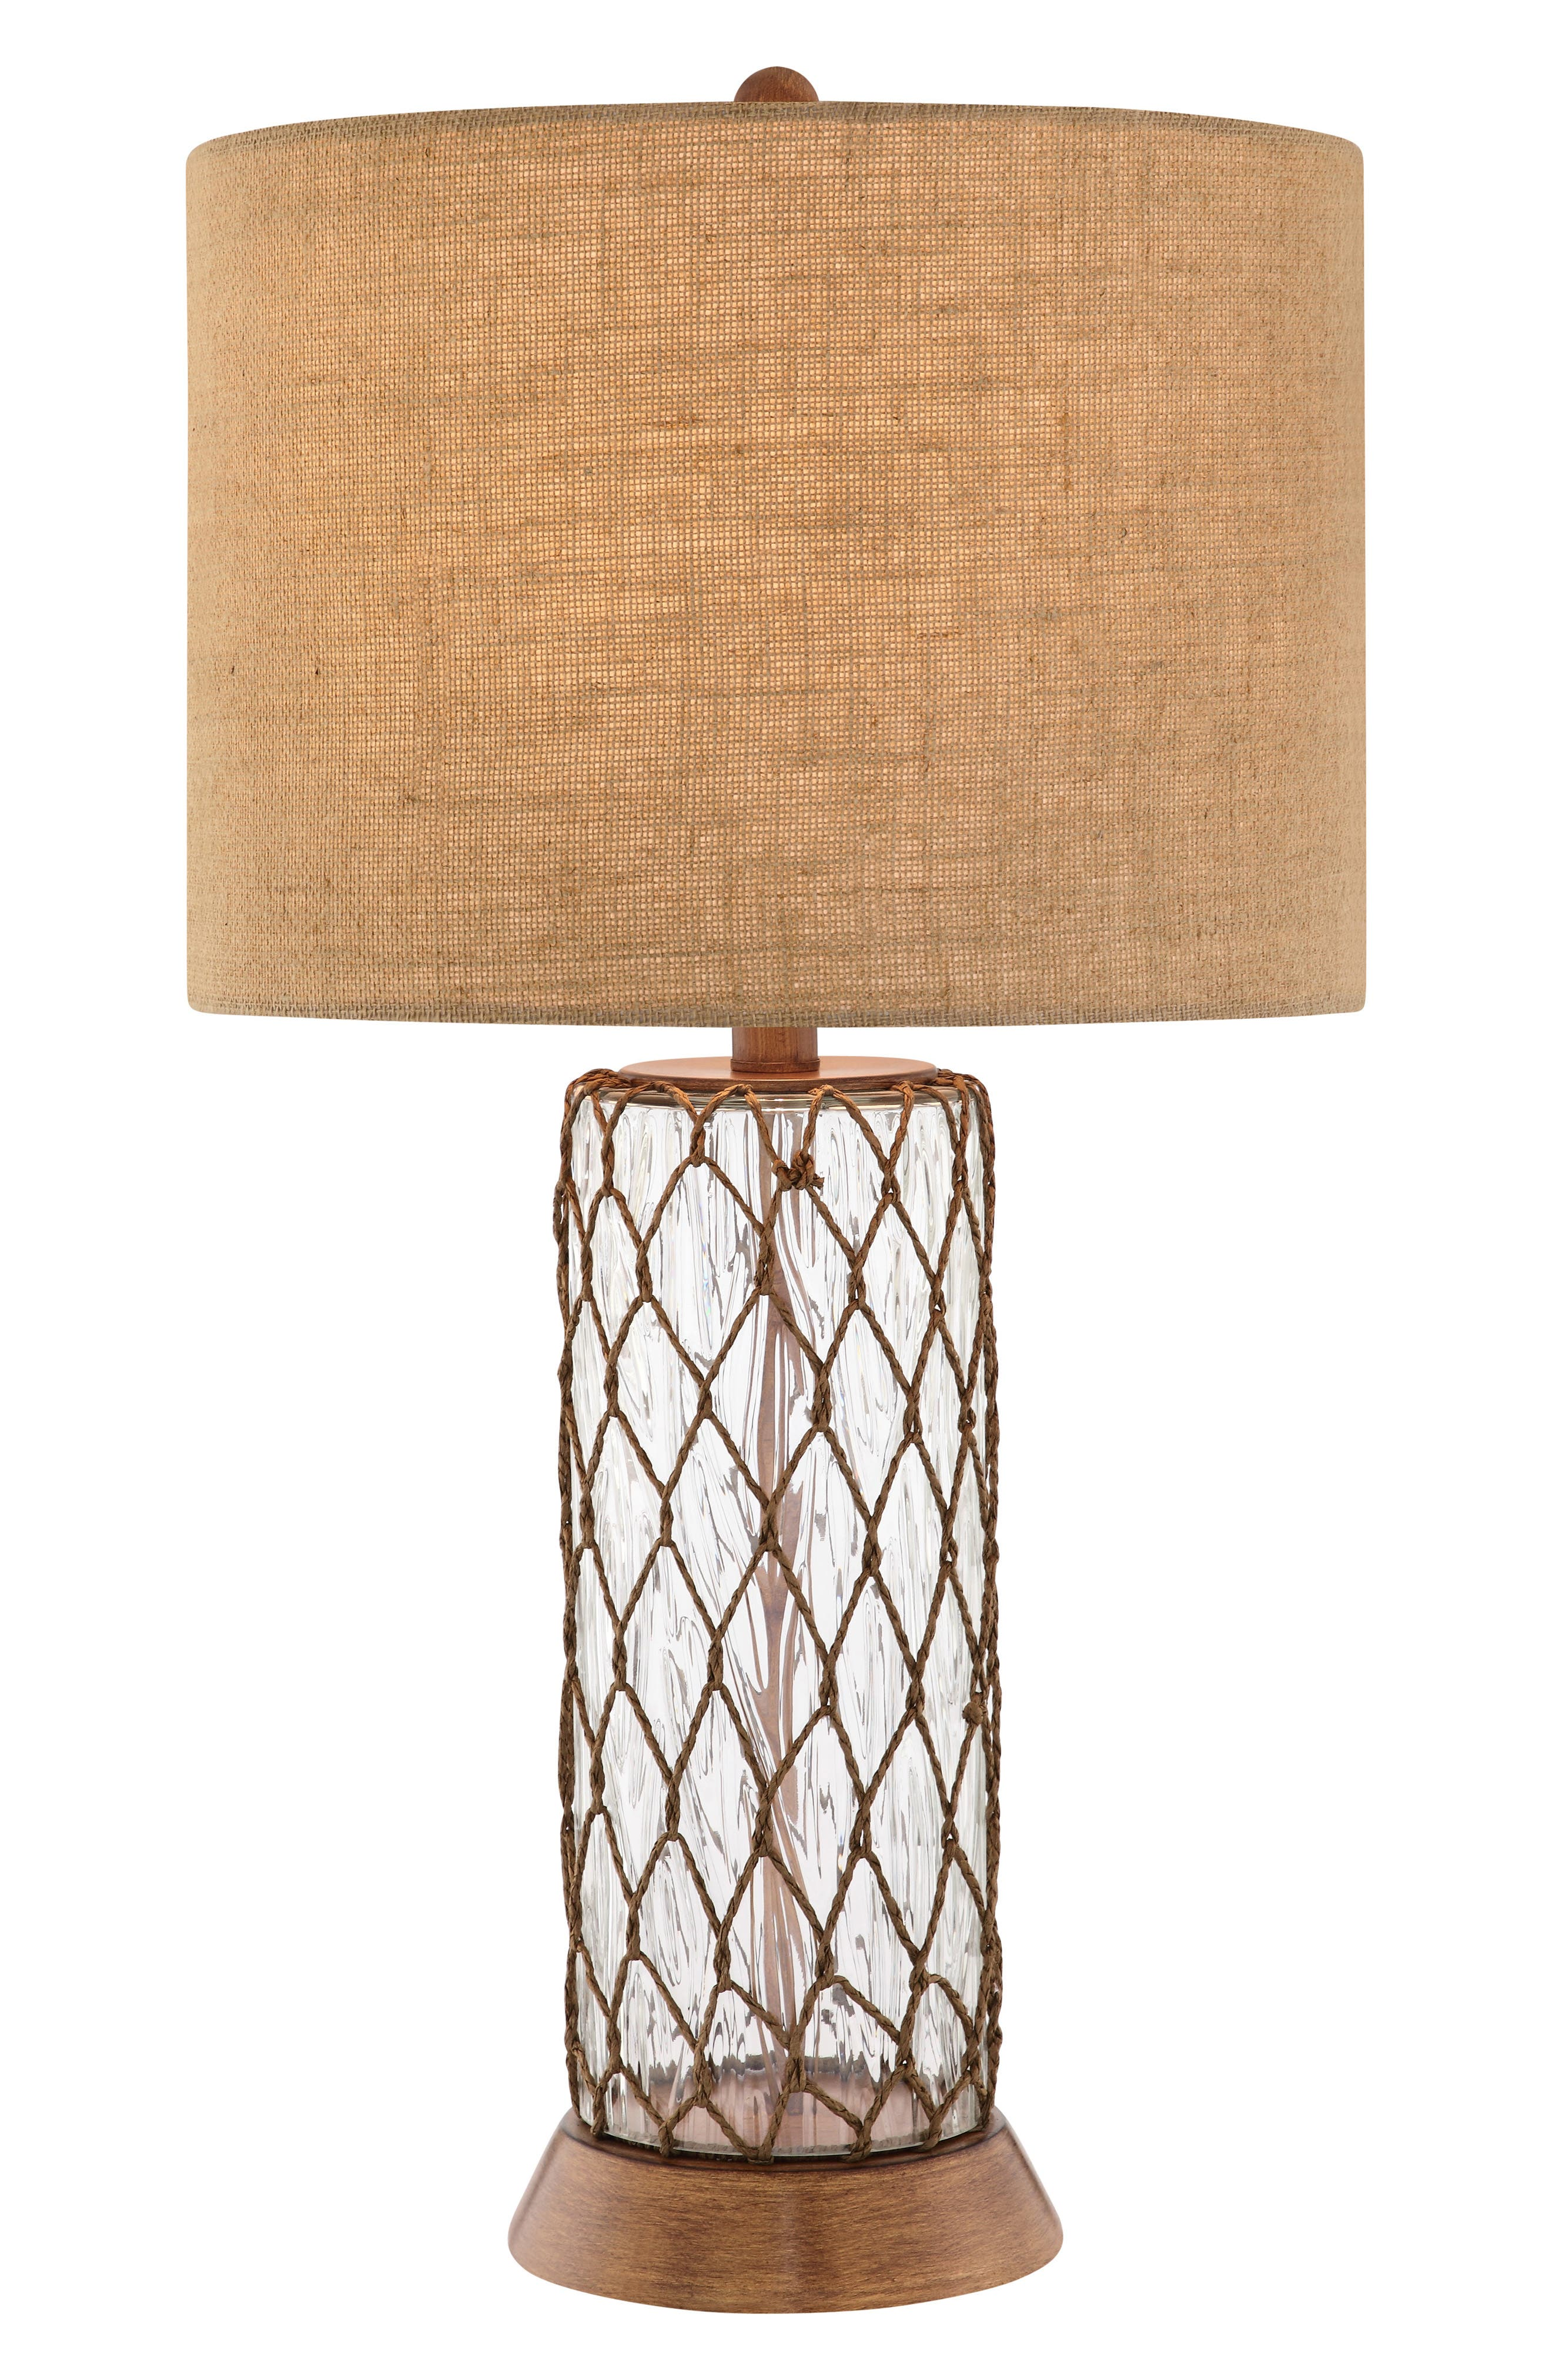 Clear Glass Table Lamp,                             Alternate thumbnail 2, color,                             250